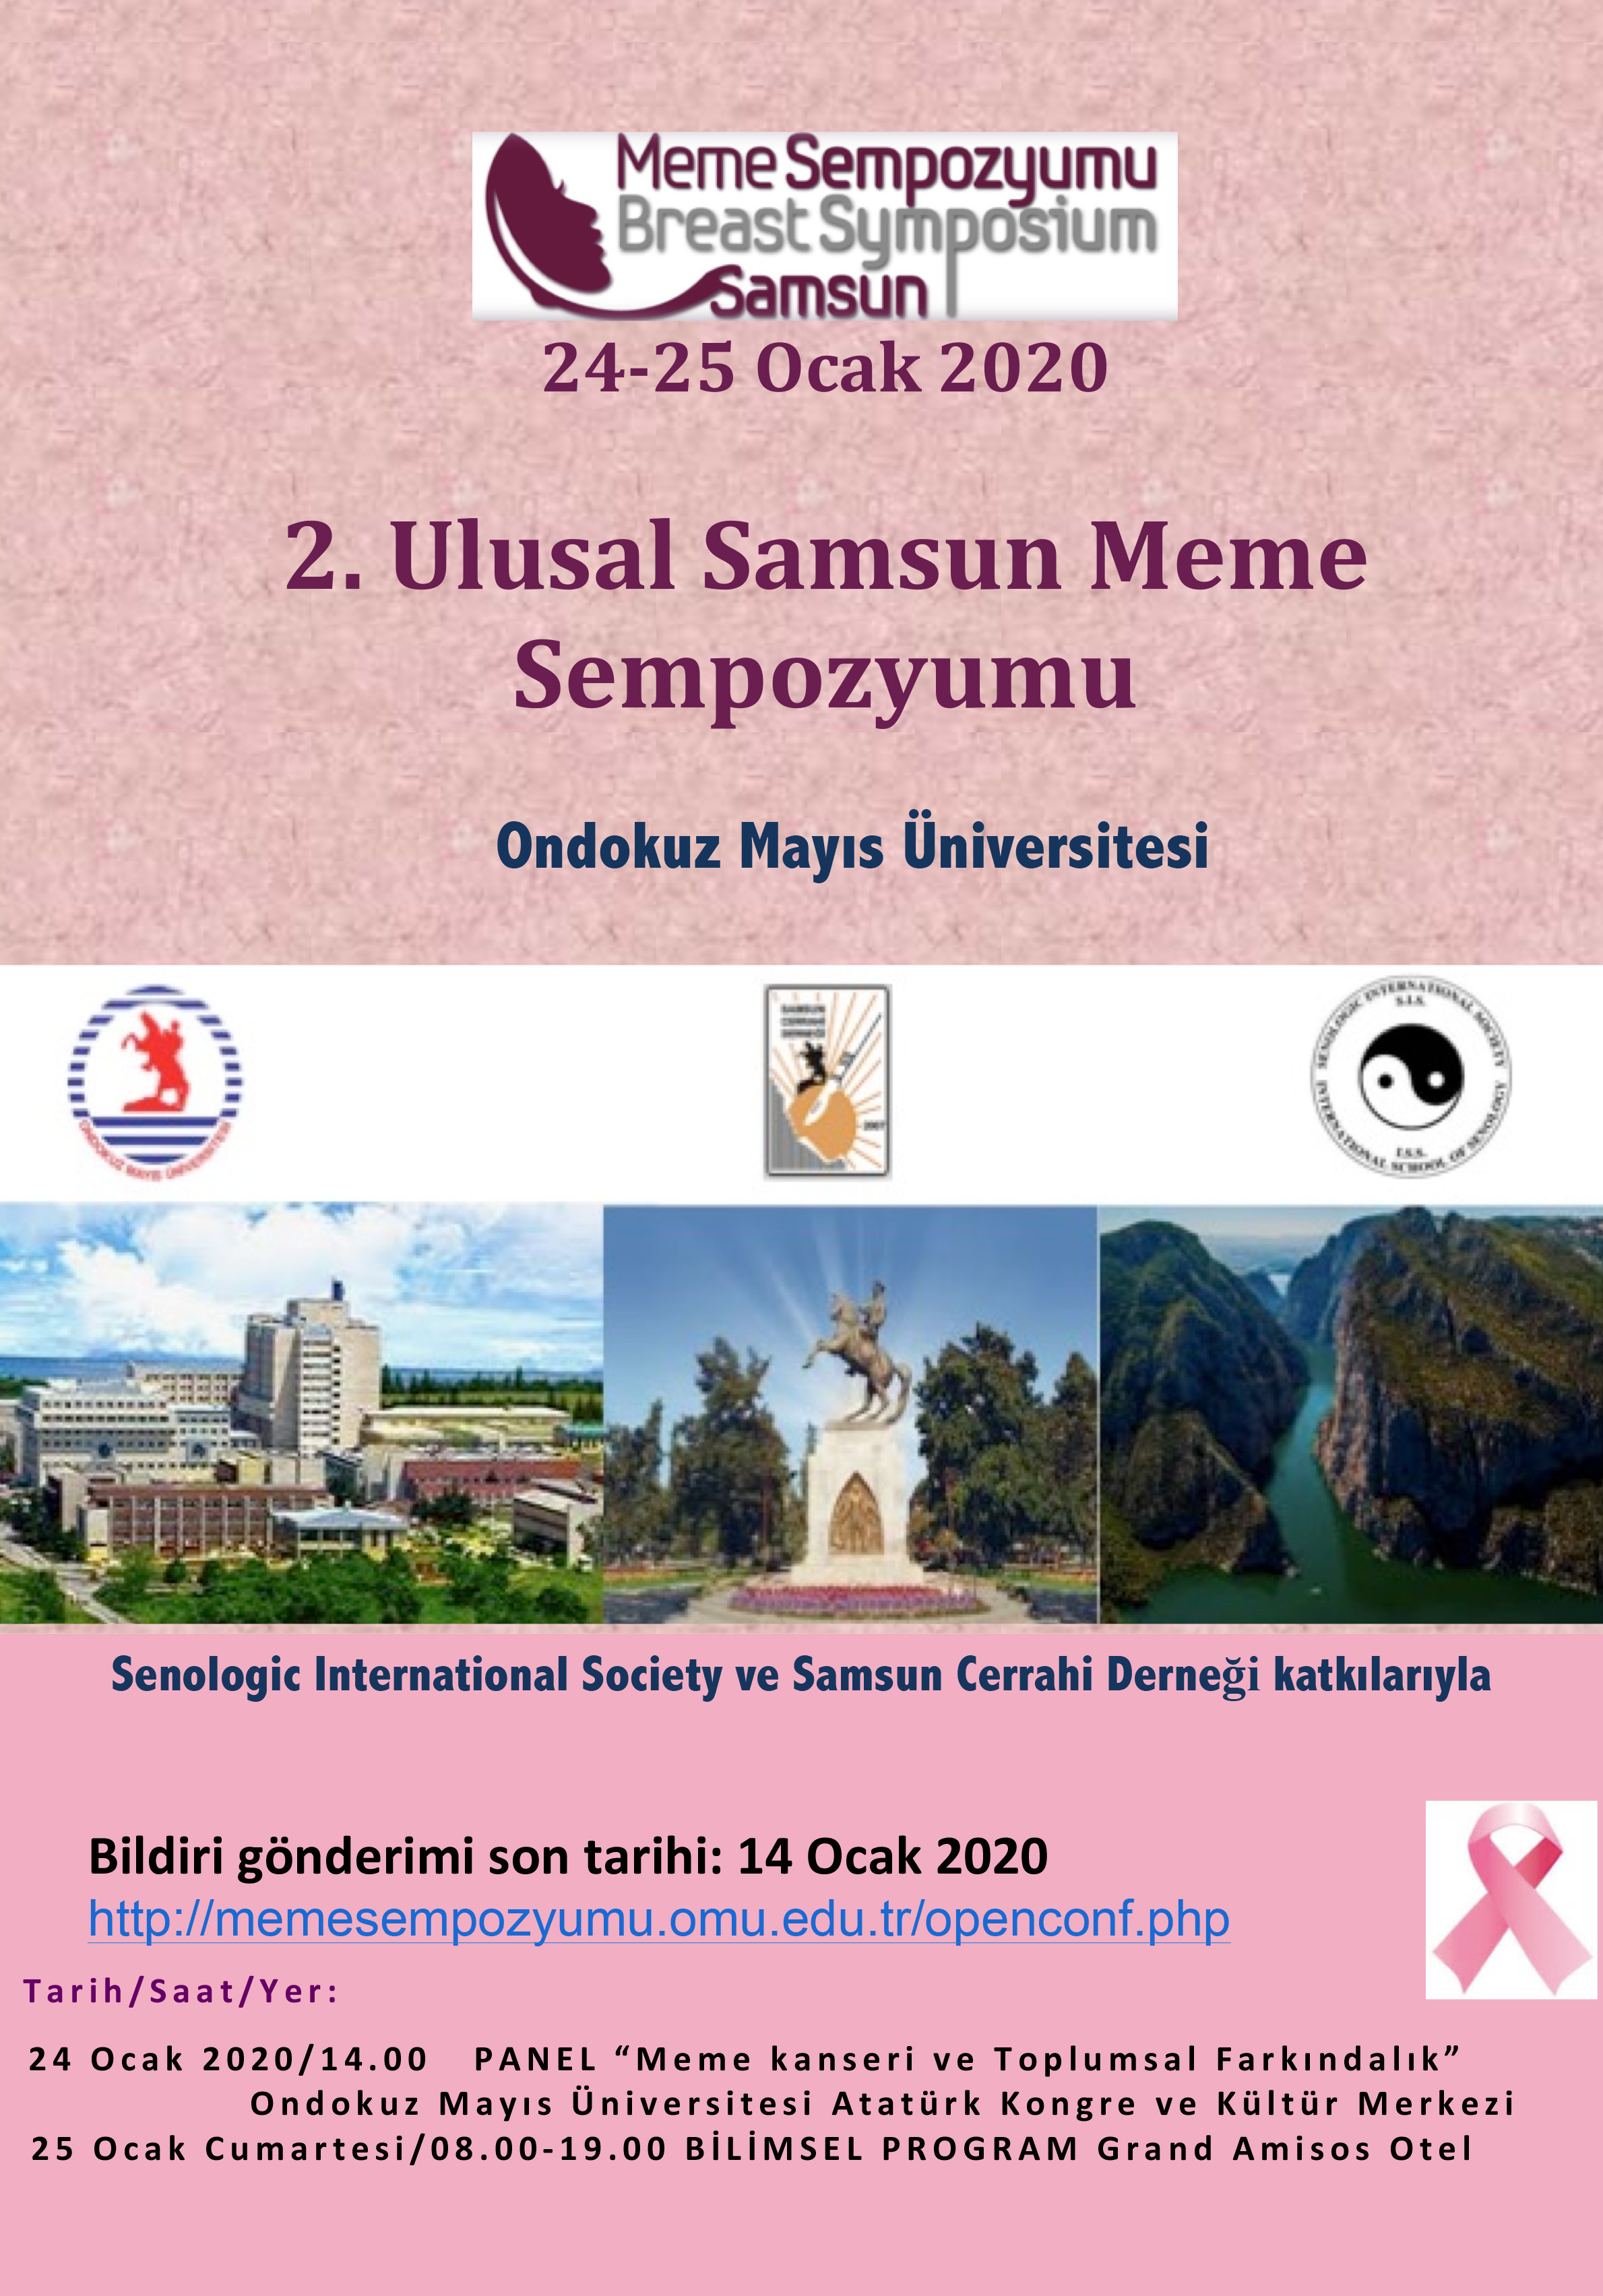 https://www.omu.edu.tr/sites/default/files/samsun_meme_sempozyumu_sis_sss_2020_bilimsel_program-1.jpg